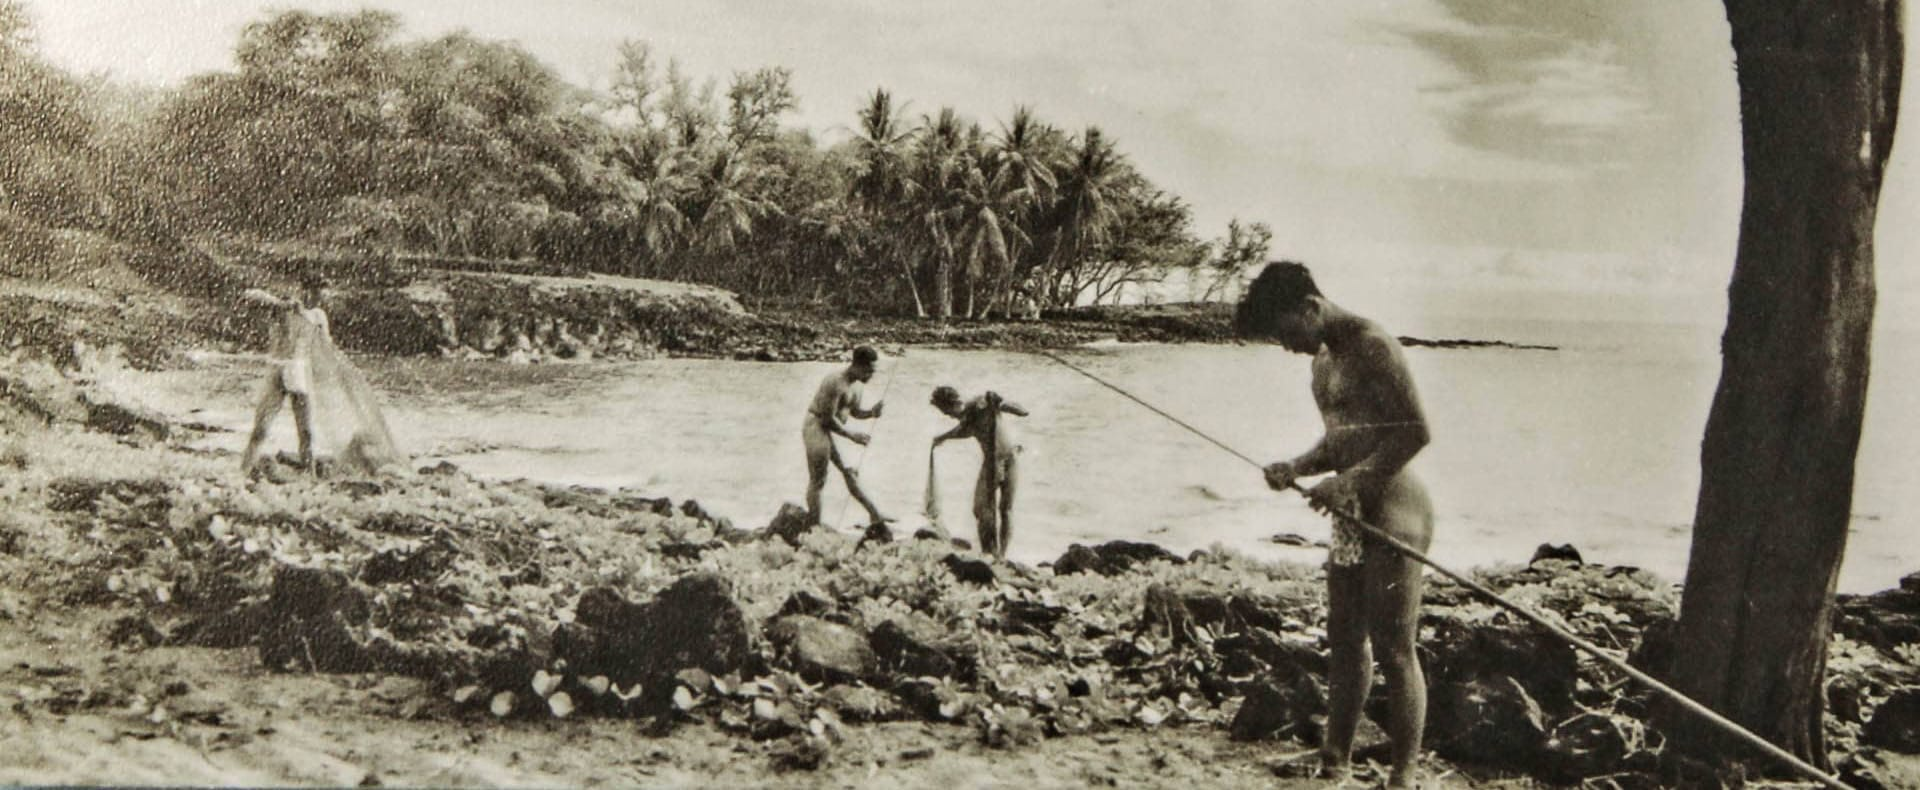 Native Hawaiians at Fish Ponds of Pu'uloa (Pearl Harbor) late 1880's